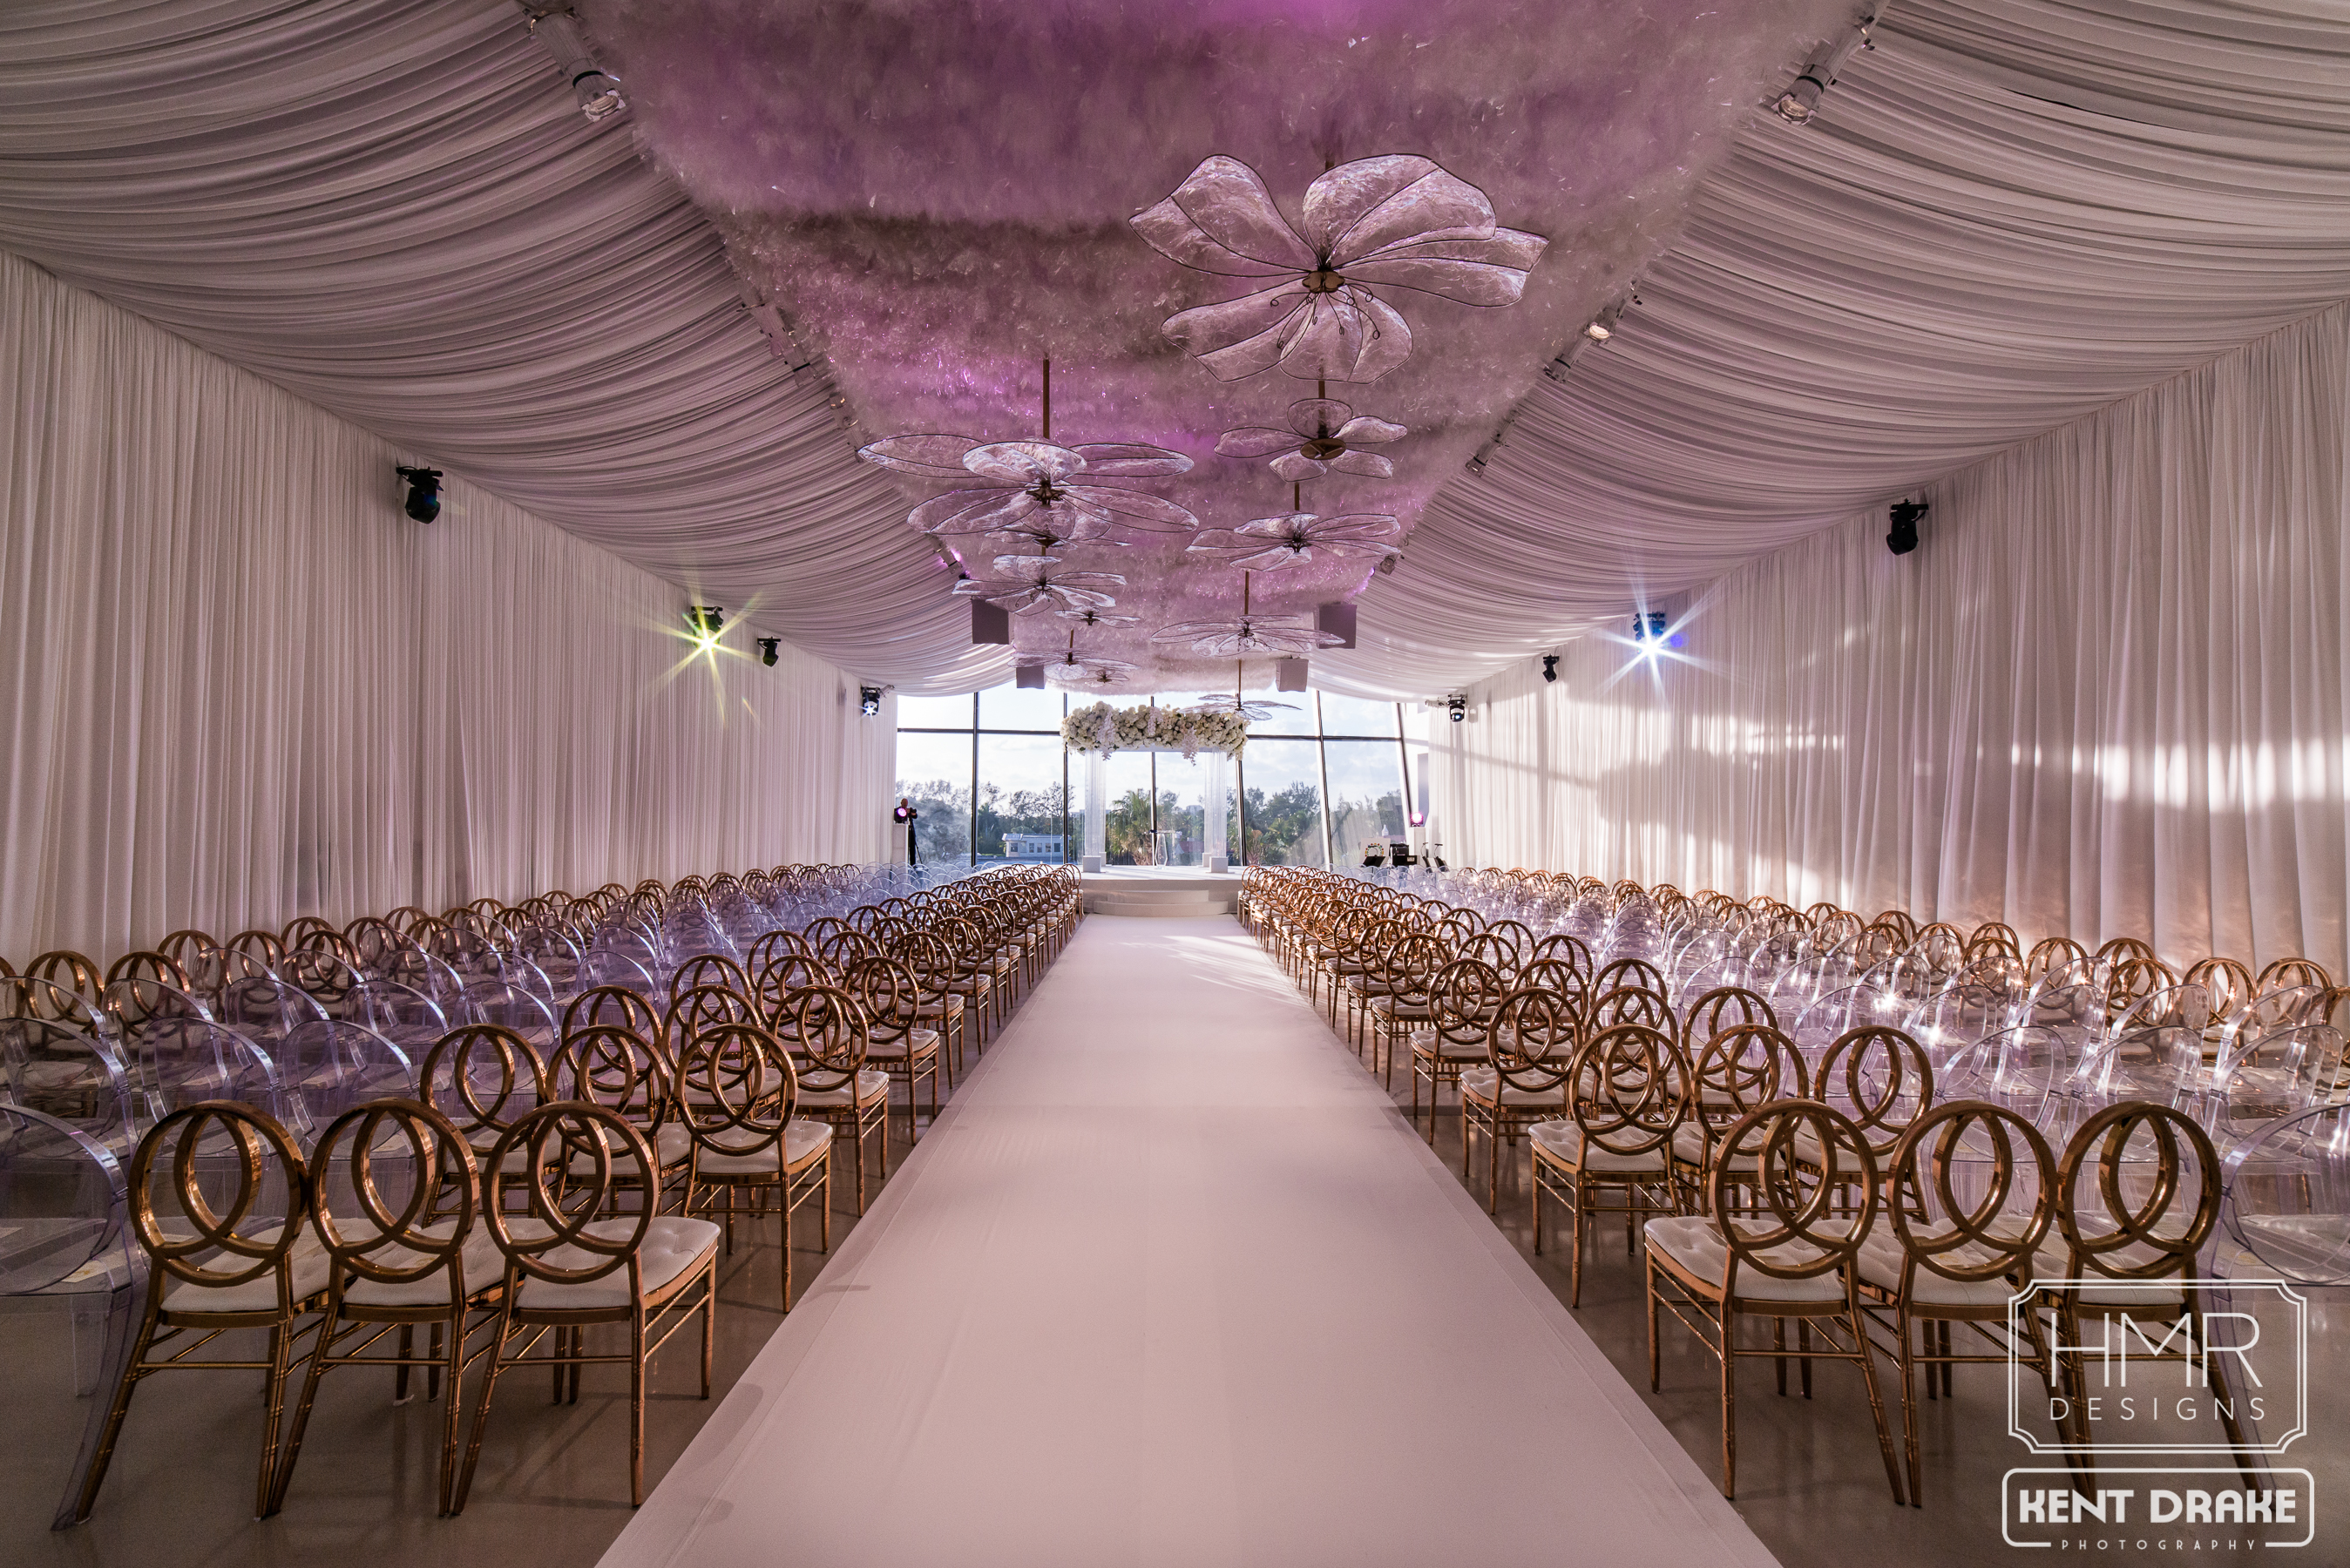 Miami Wedding - Paulette Wolf Events